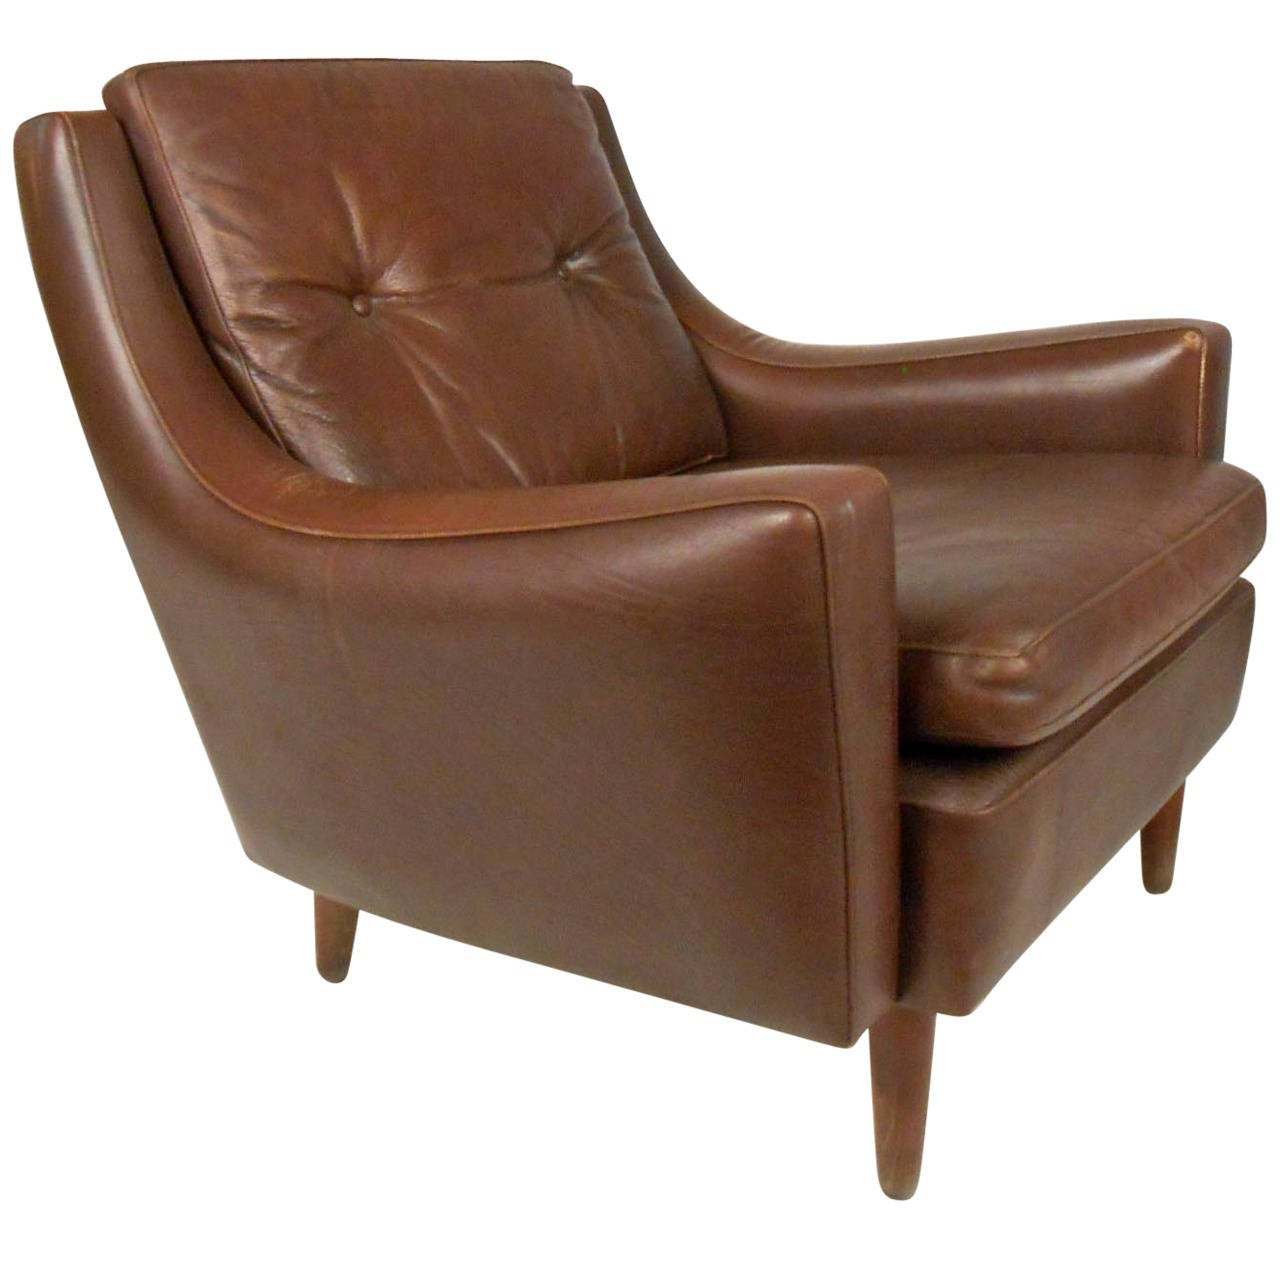 Charming Mid Century Modern Tufted Brown Leather Club Chair For Sale